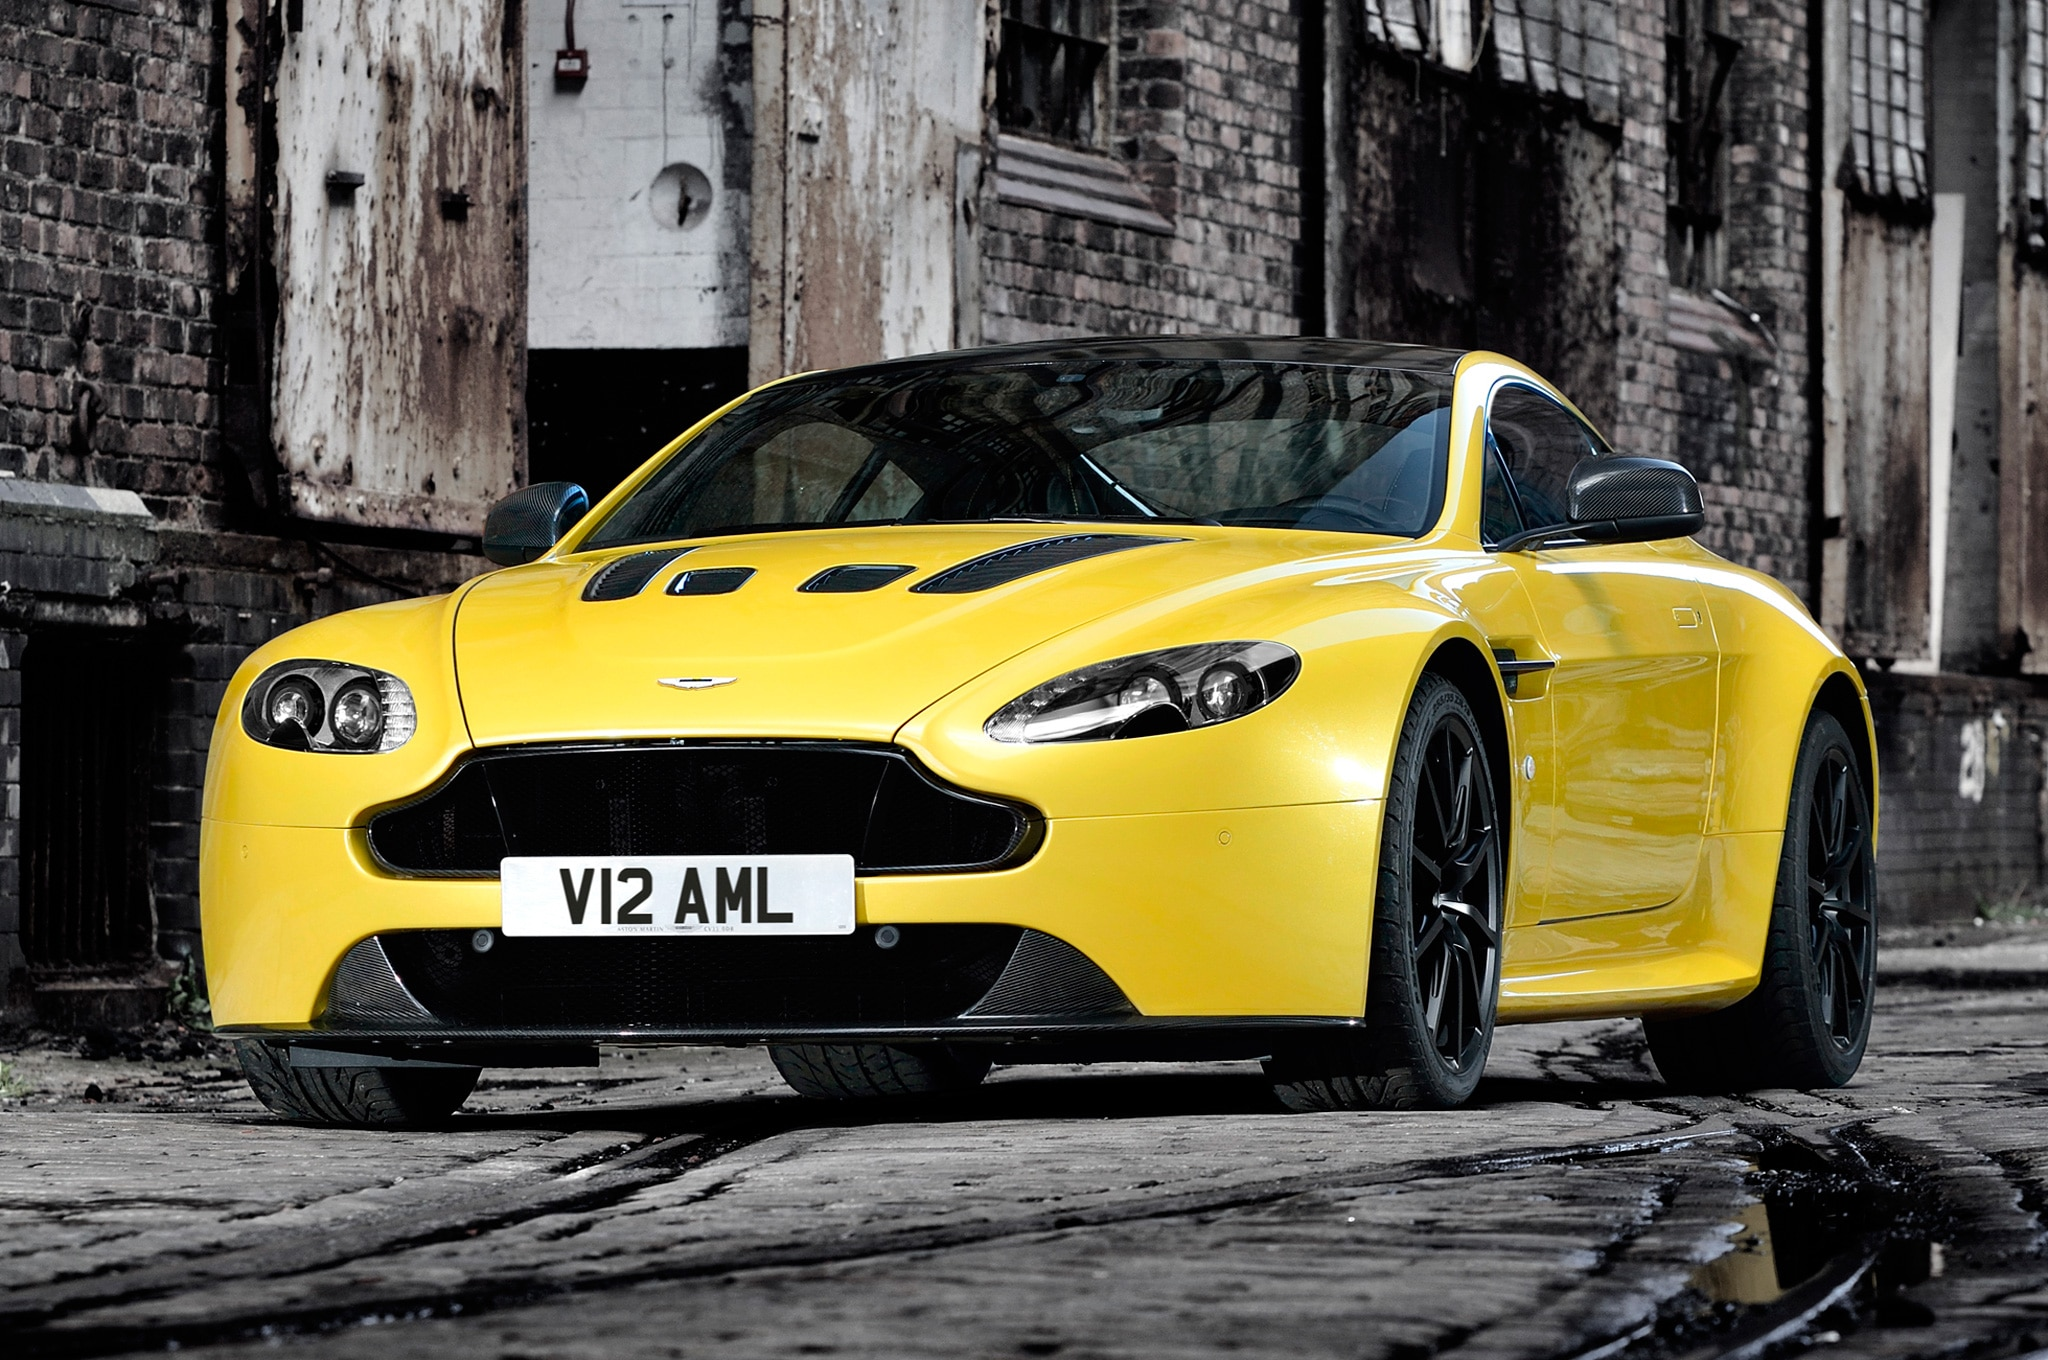 The 2017 Aston Martin V12 Vantage S Will Offer a 7-Speed Manual